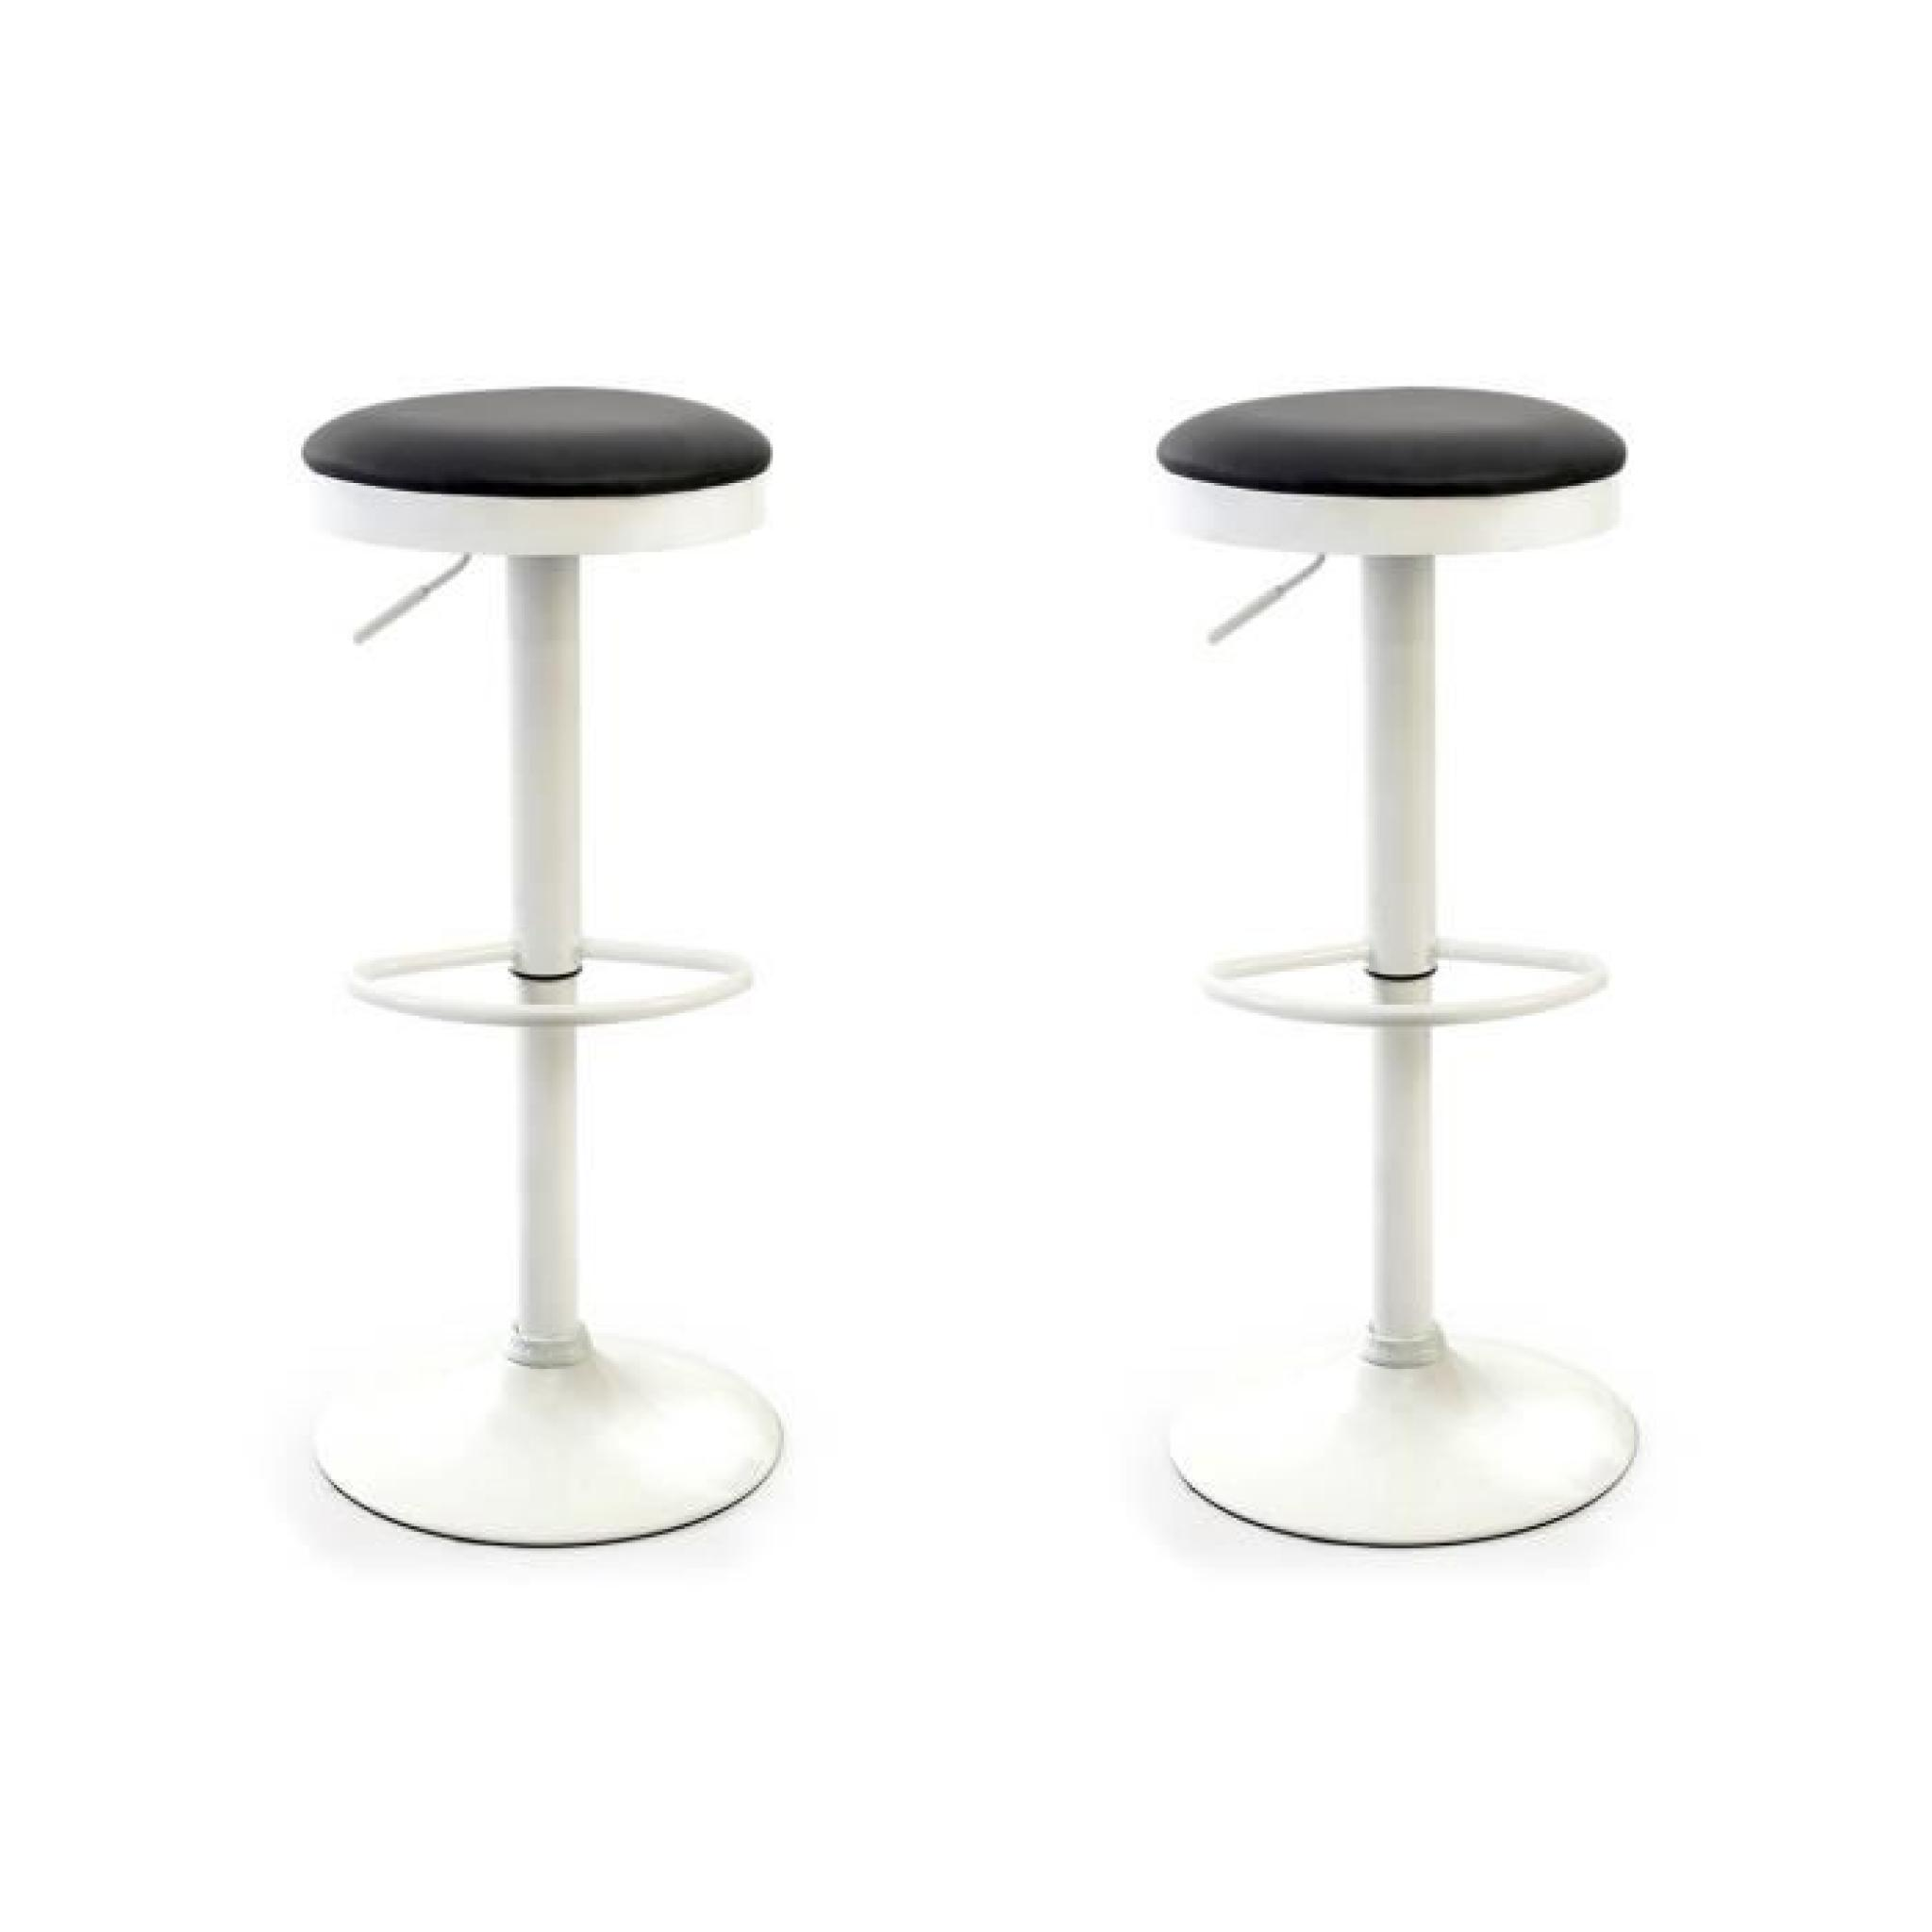 lot de 2 tabouret de bar pas cher lot de tabourets de bar. Black Bedroom Furniture Sets. Home Design Ideas